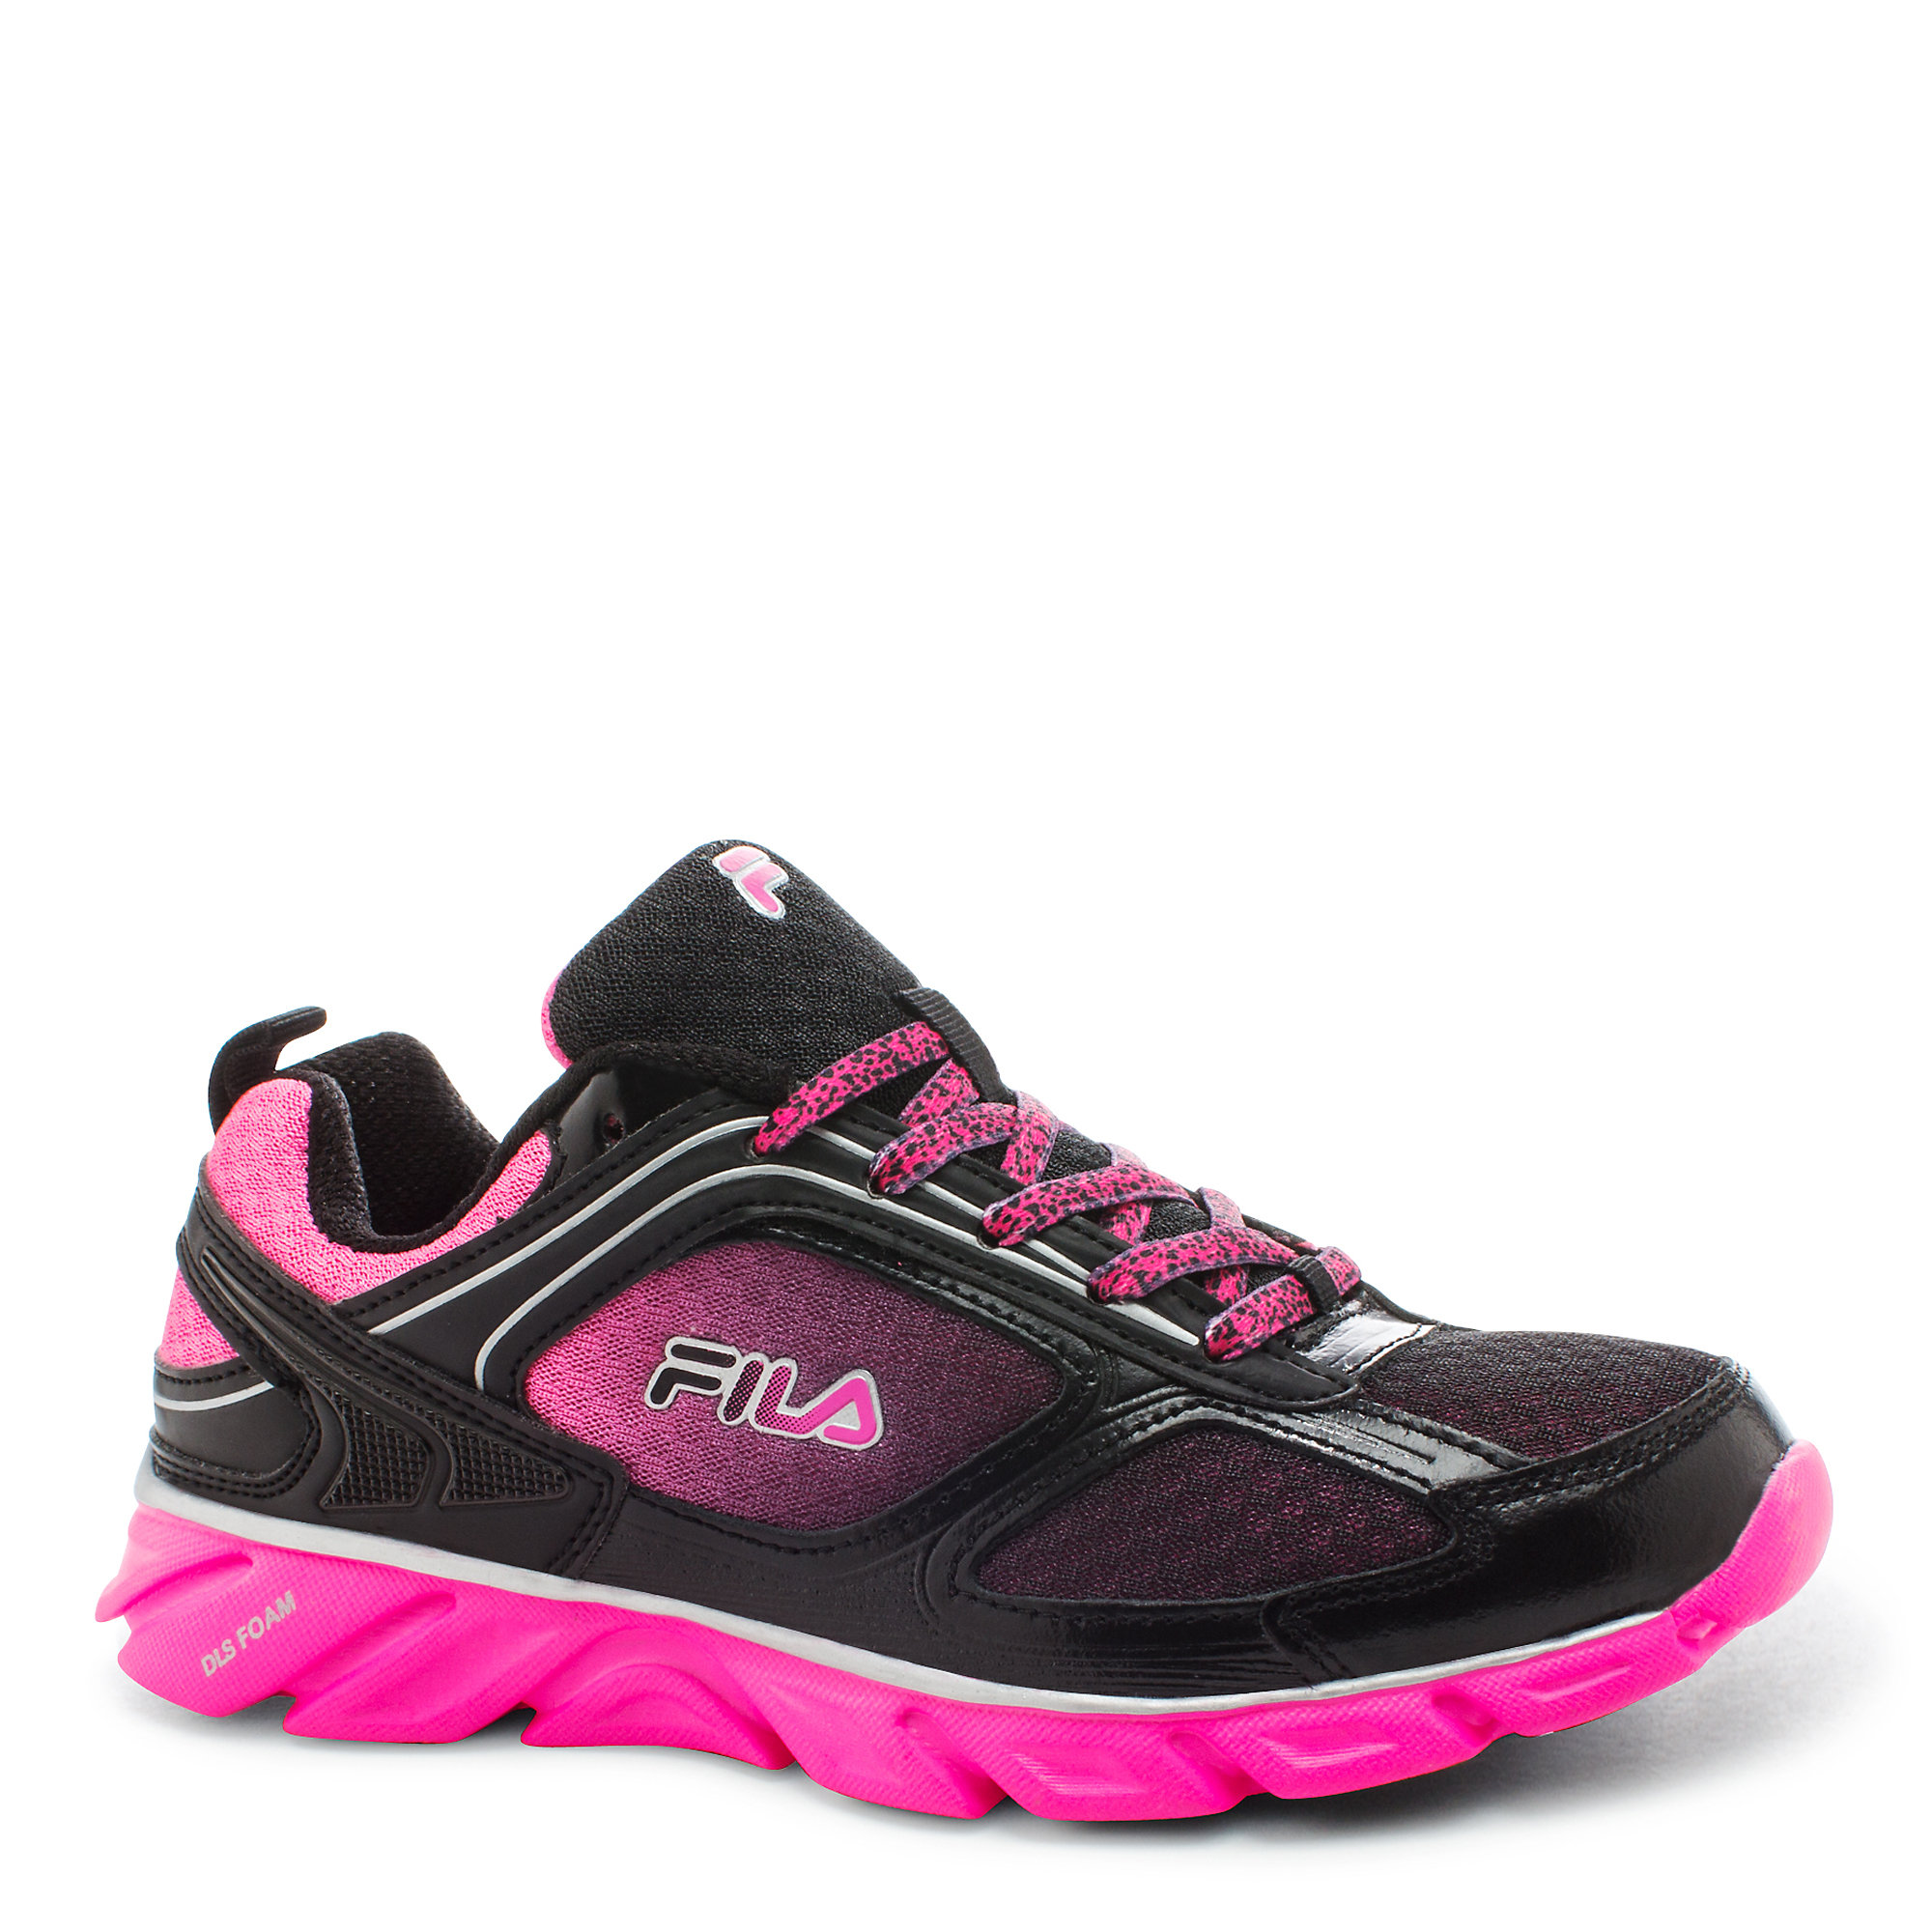 Fila Women U0026 39 S Stride 3 Running Shoes